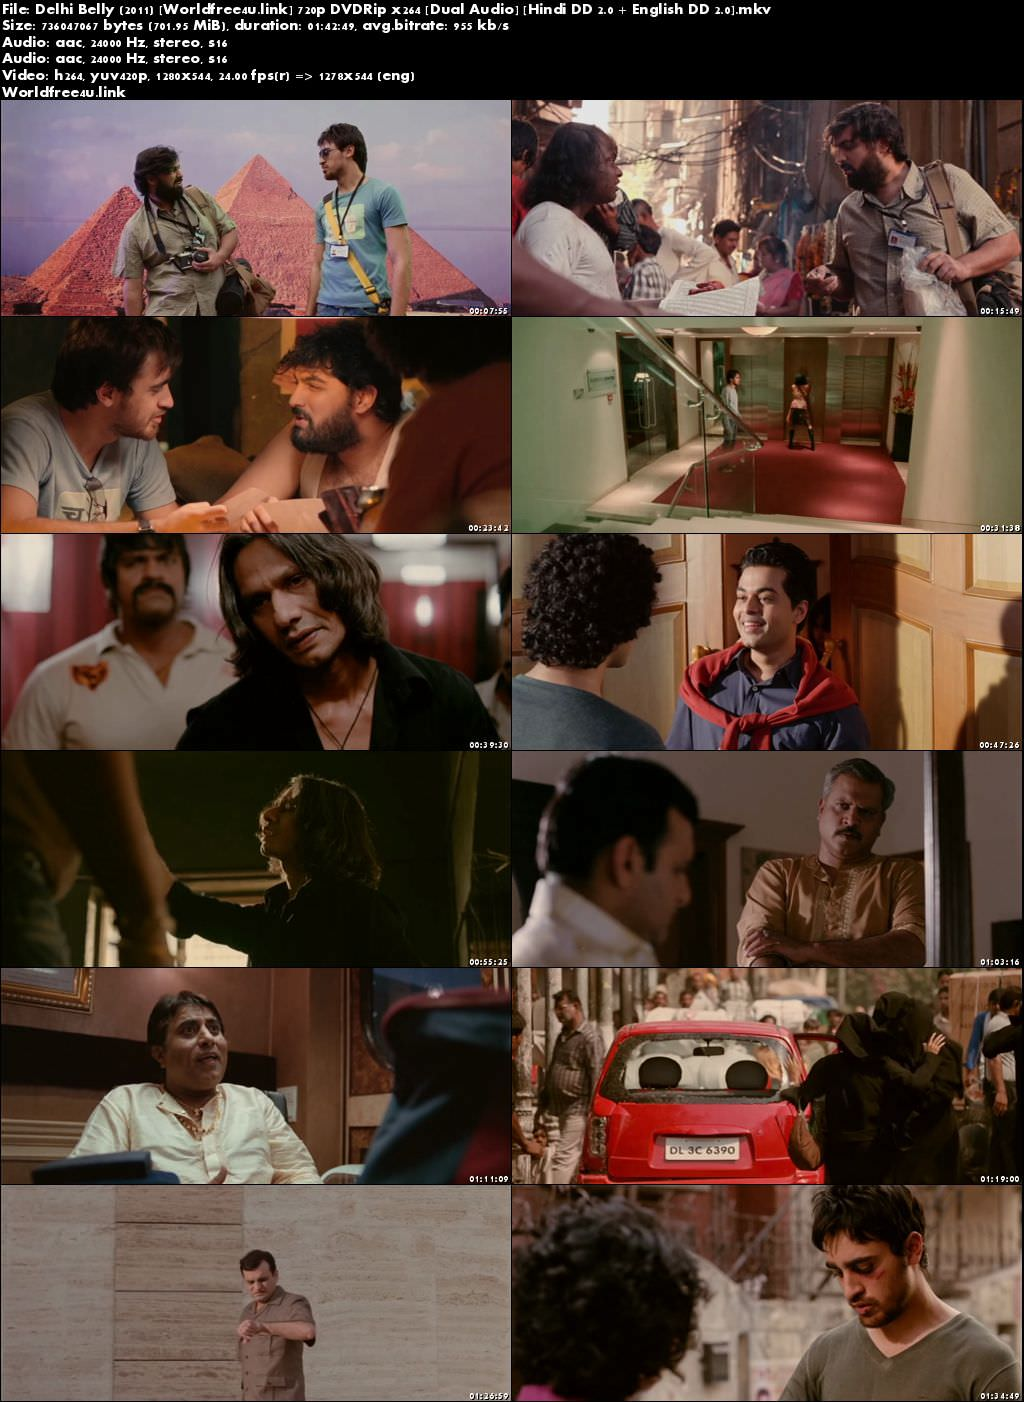 Screen Shoot of Delhi Belly 2011 Full Hindi Movie Download 720p Watch Online Dual Audio